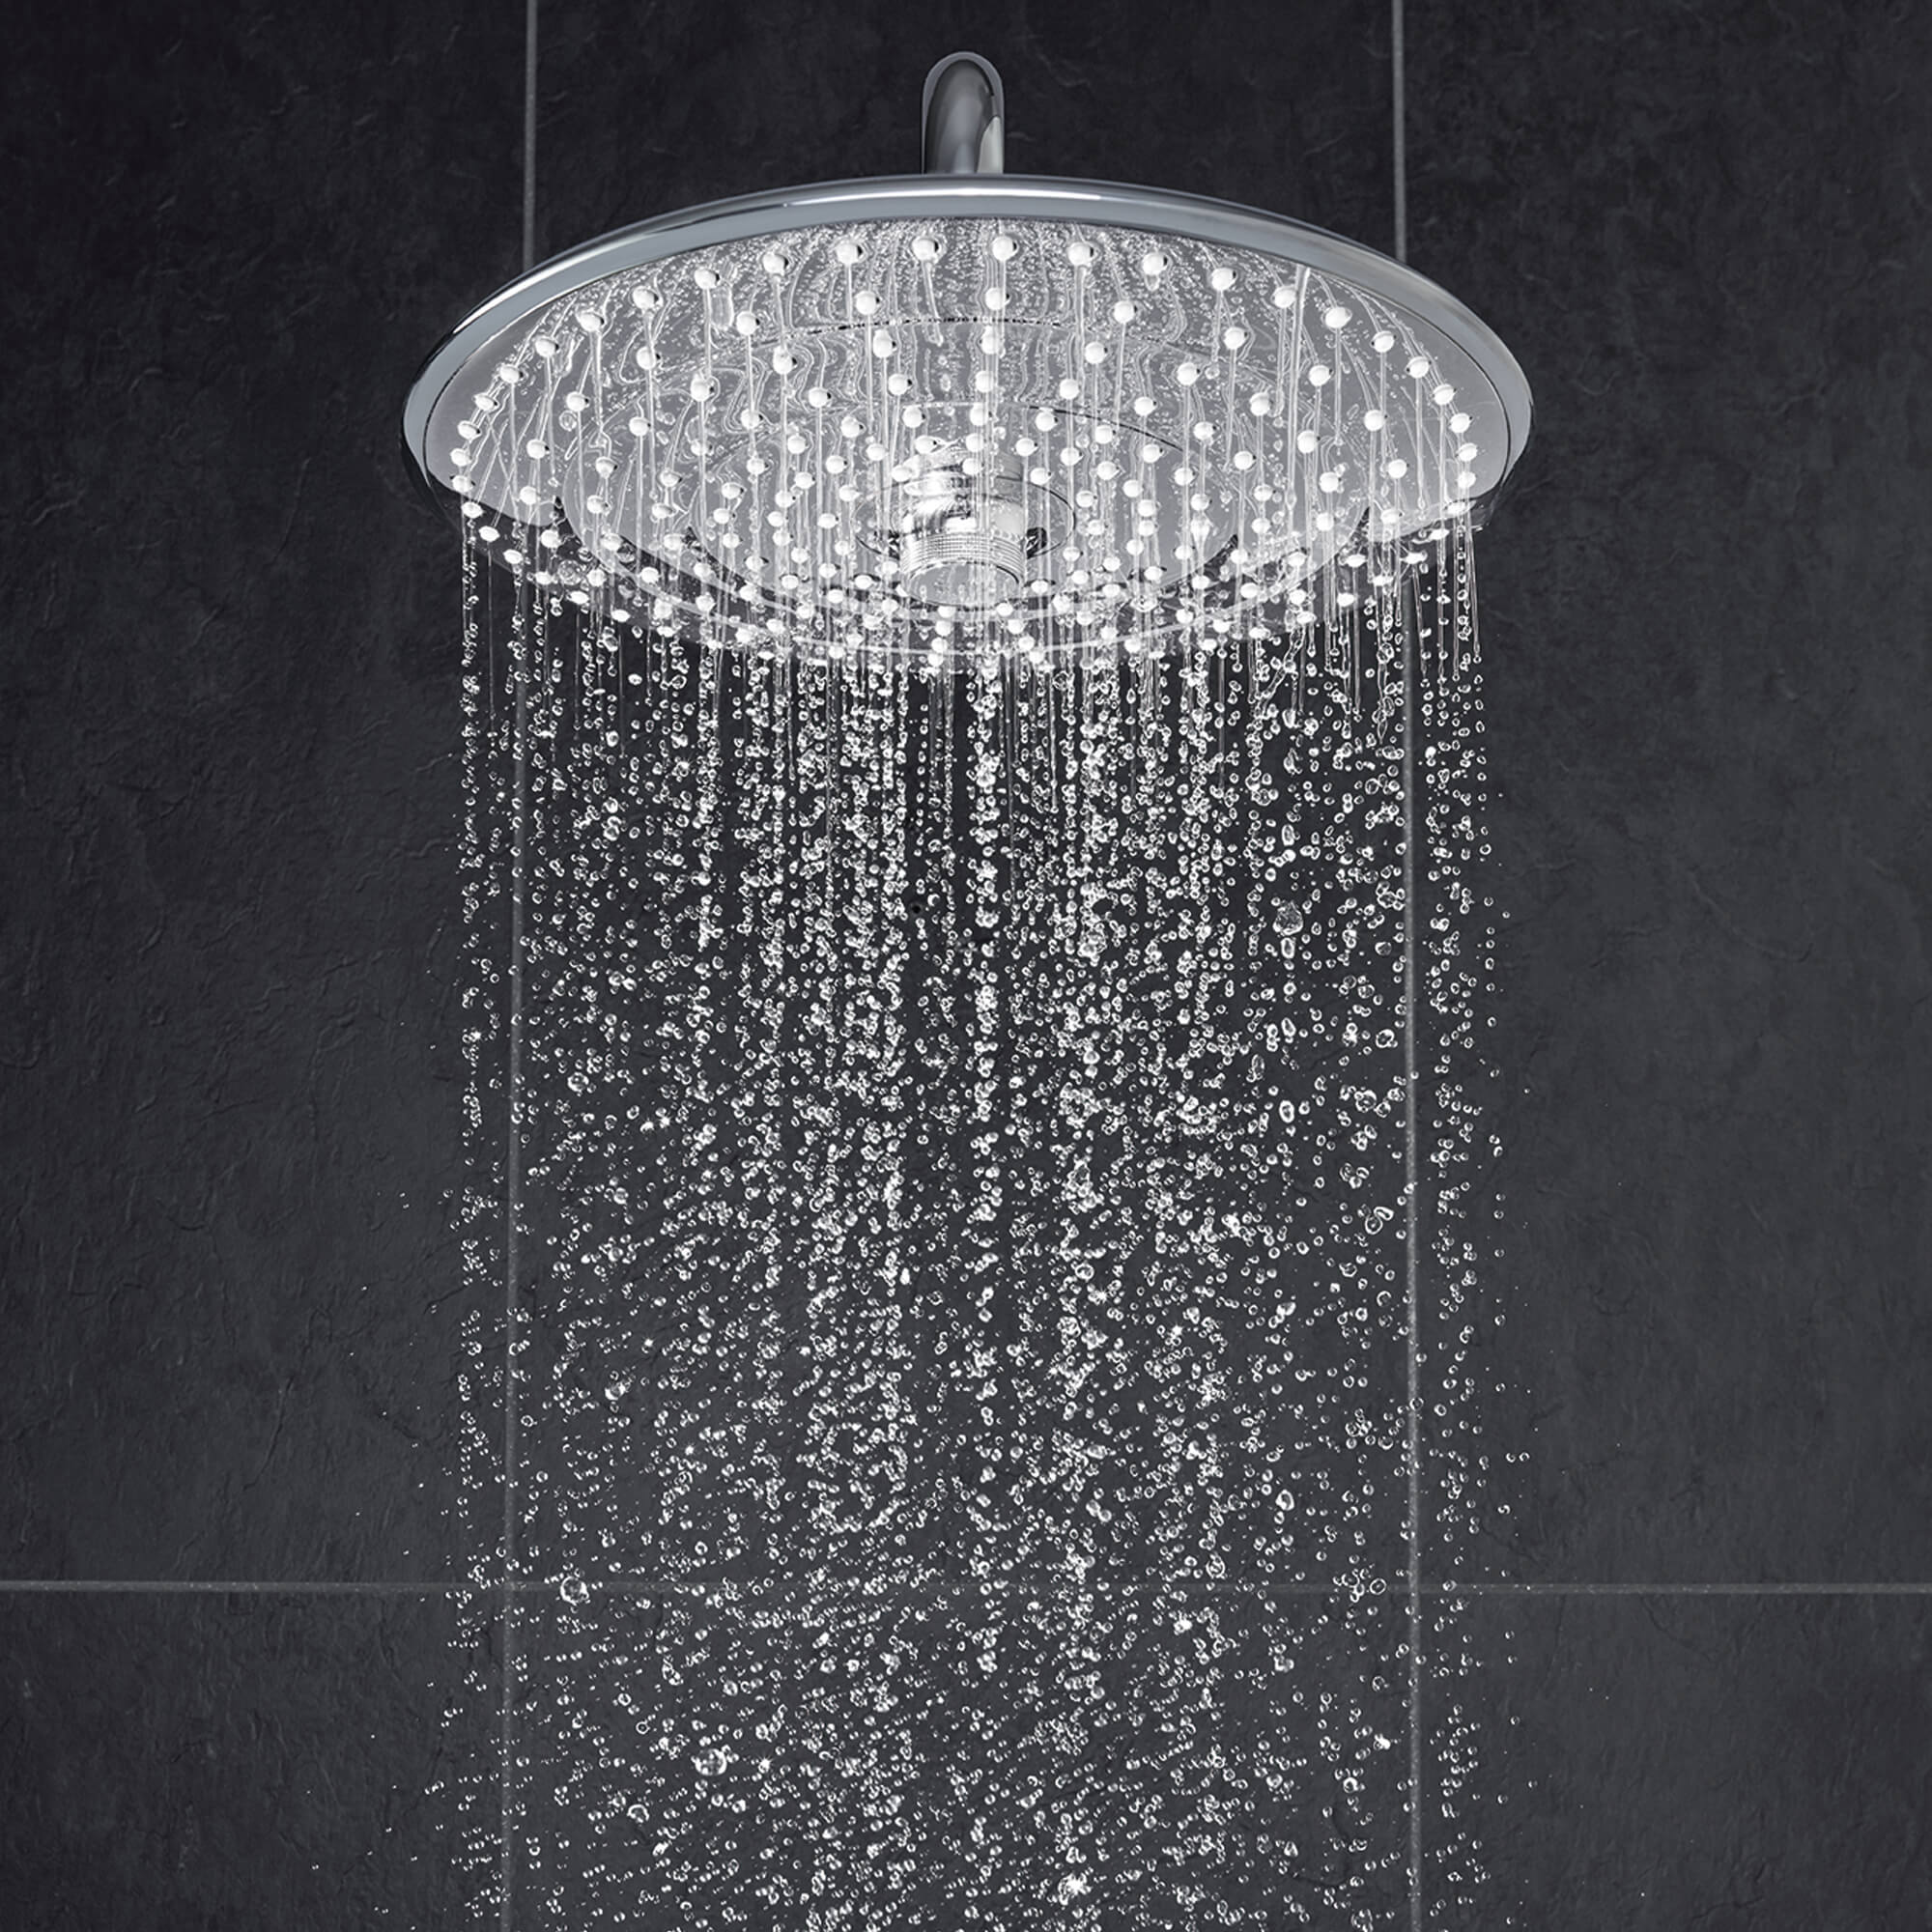 running rain shower from round showerhead